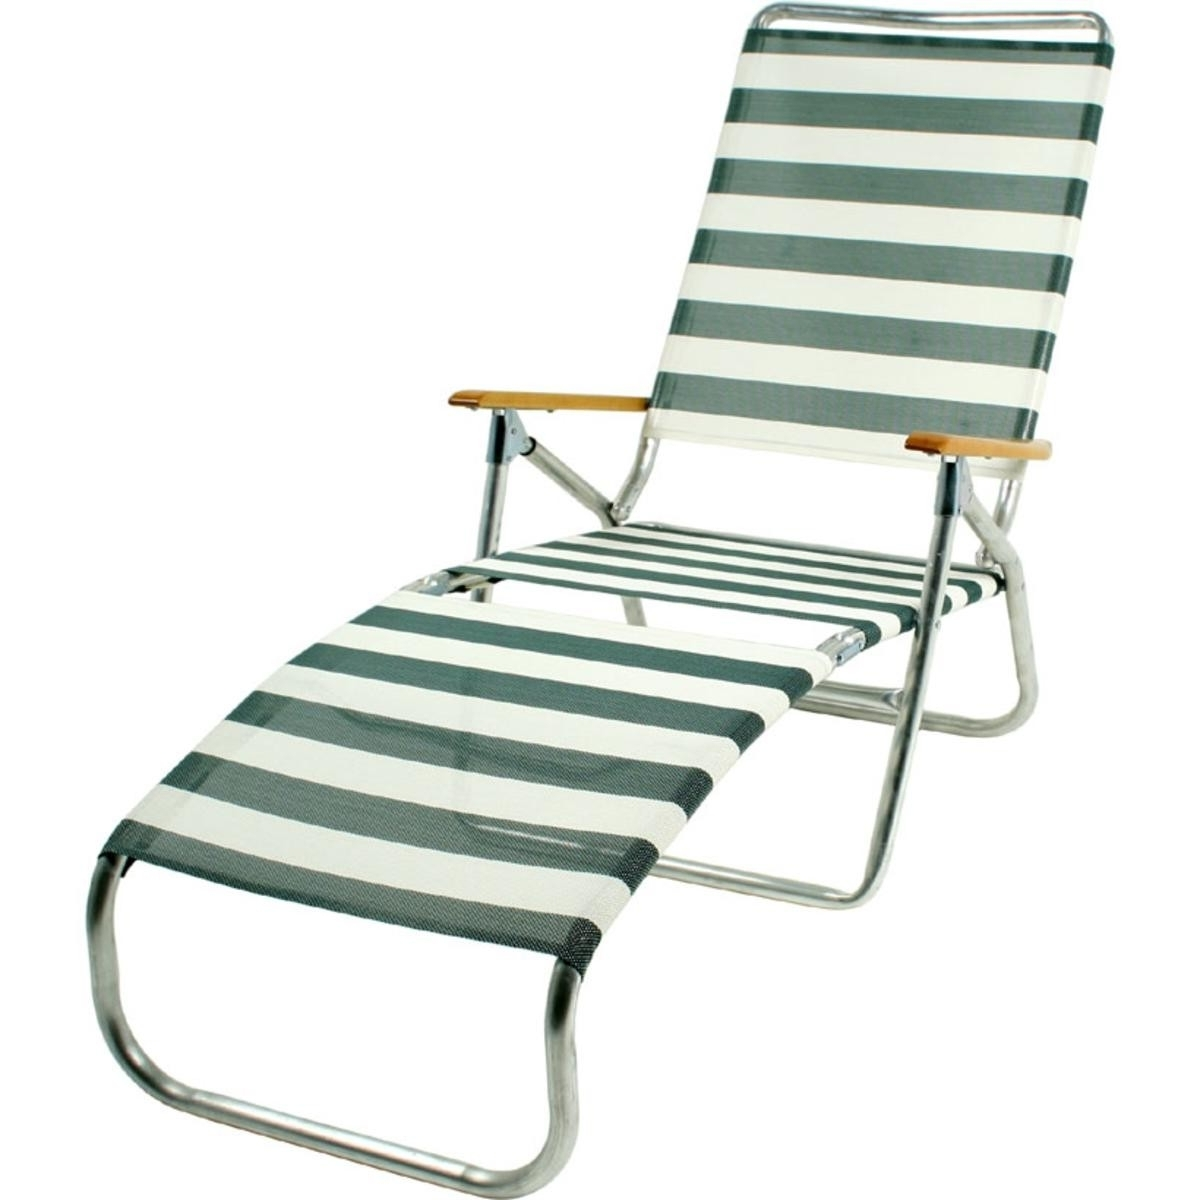 Most Recently Released Beach Chaise Lounge Chairs In Adorable Beach Chaise Lounge Chair Chairs Ideas (View 1 of 15)